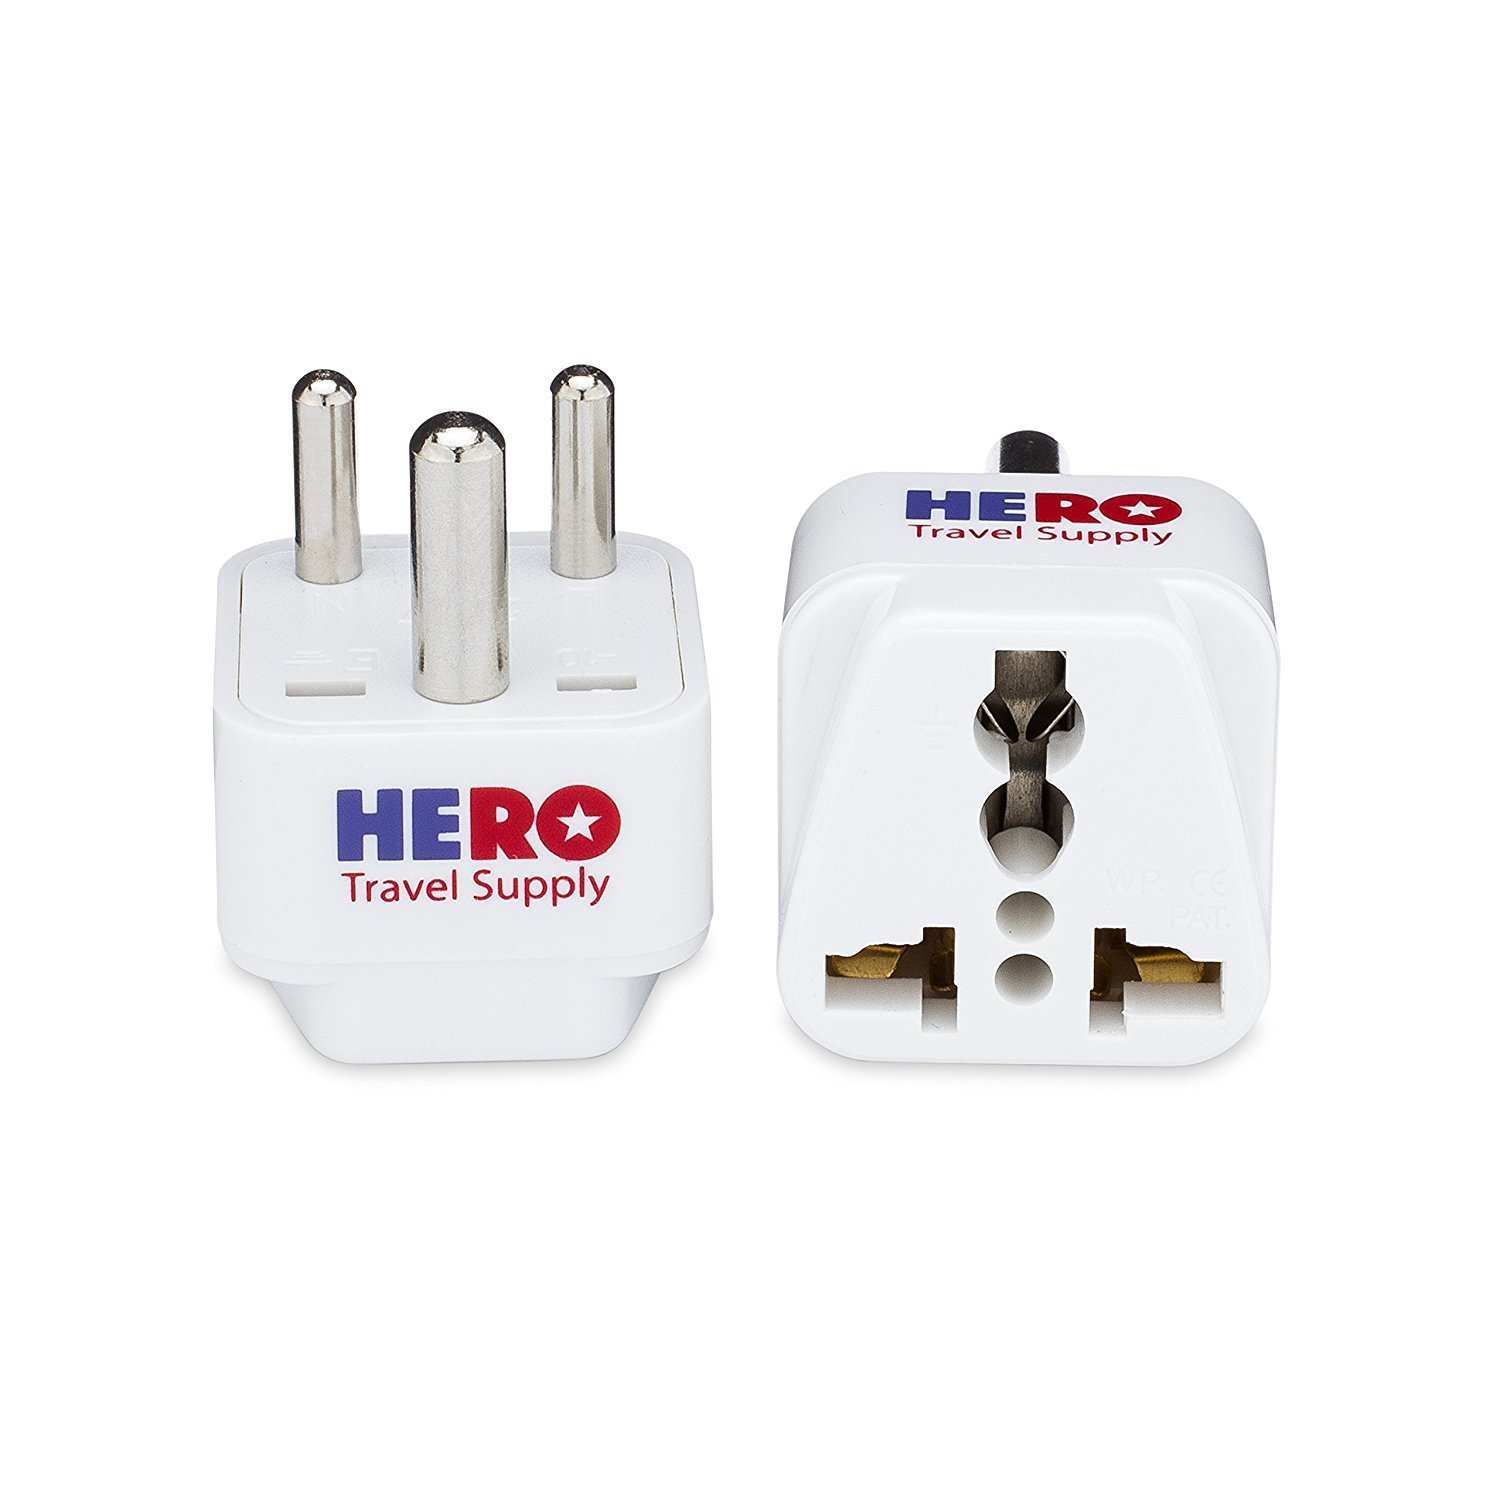 Type D, 3 Pack - Individually Tested in The USA by Hero Travel Supply Includes 2 Free India Ebooks /& Cotton Carry Bag Grounded White Premium US to India Power Adapter Plug